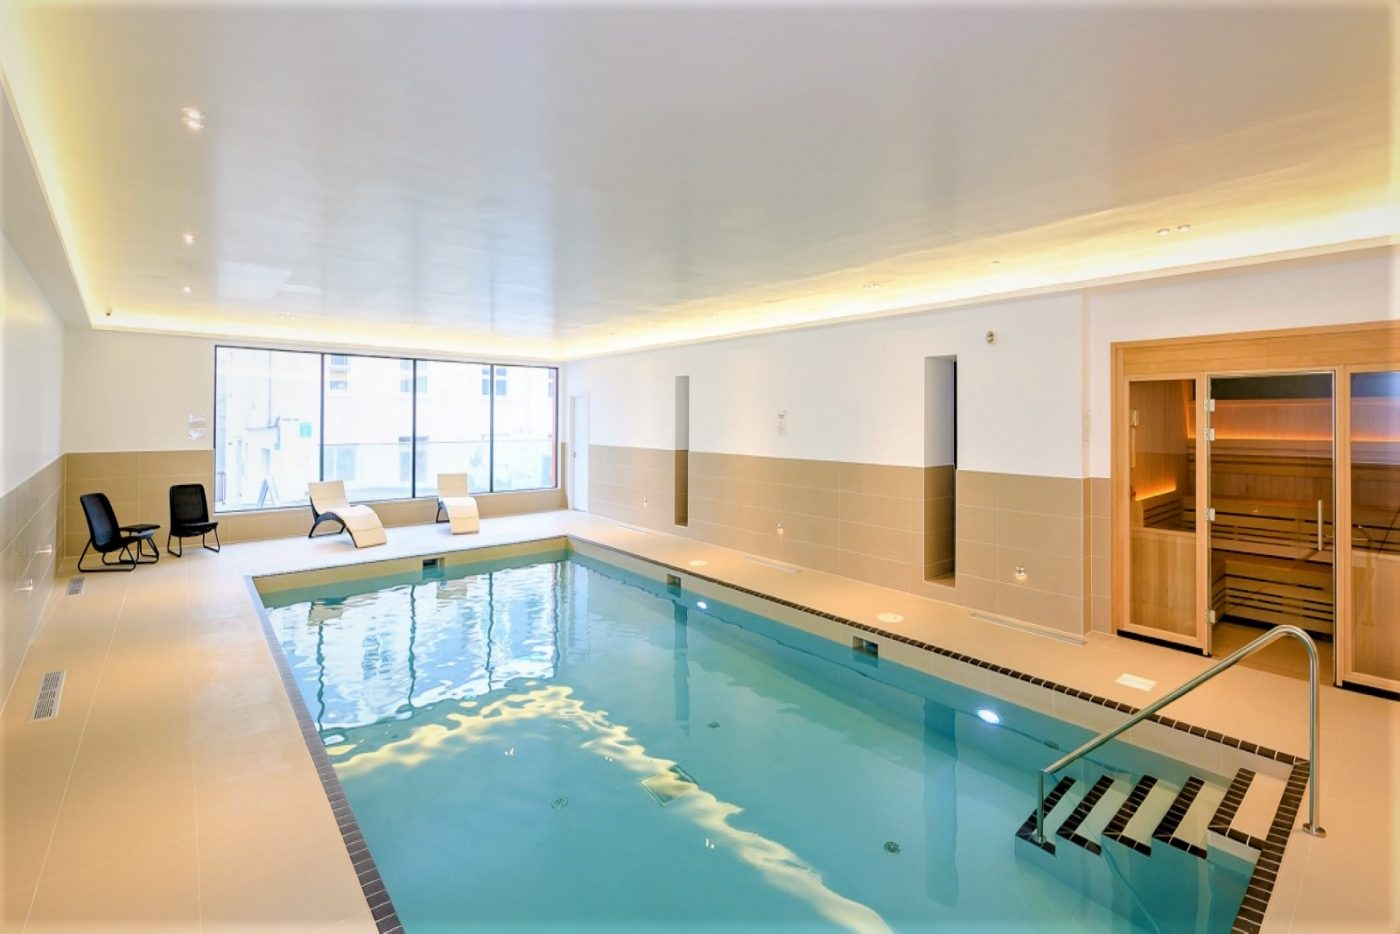 Byron's indoor heated swimming pool is 11m long and provides a source of fun for the whole family!